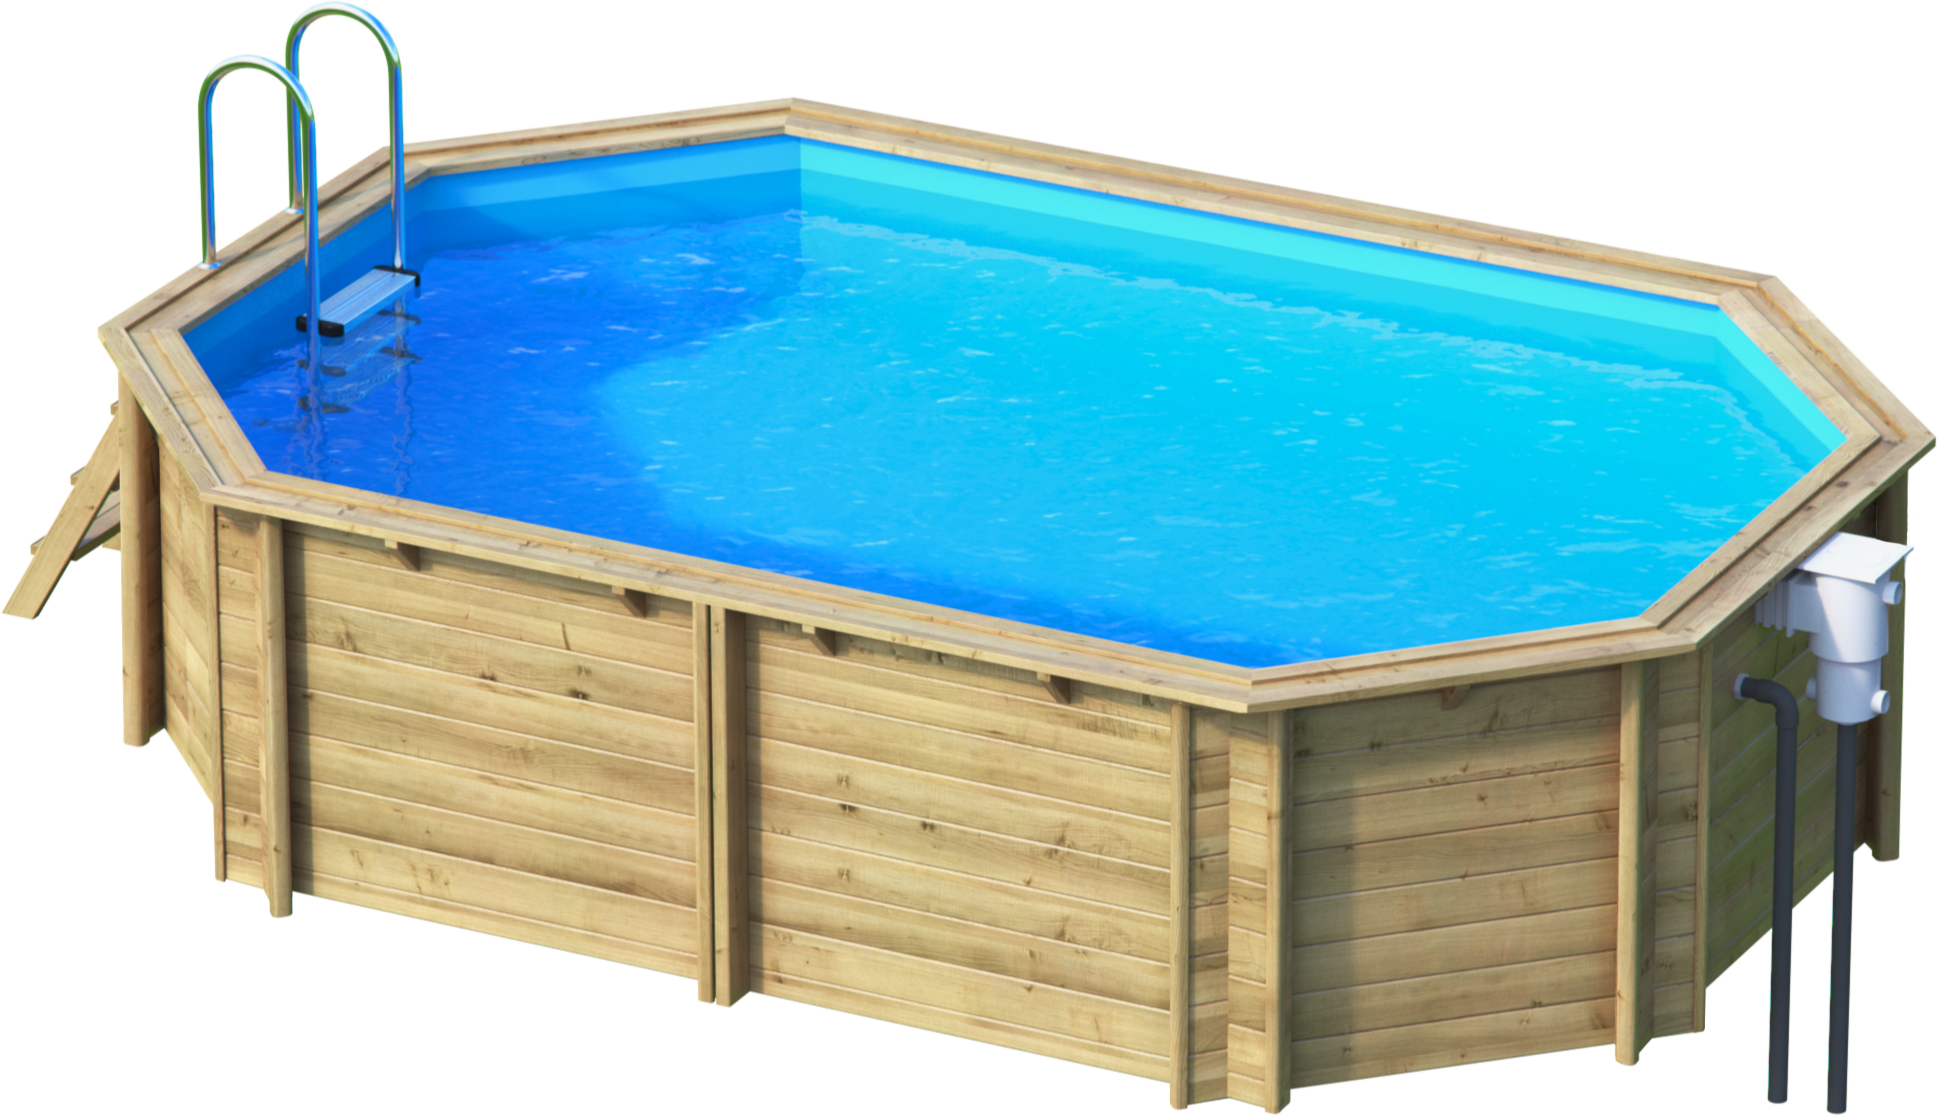 Tropic octo 450 piscine bois tropic par lpc for Piscine tropic octo 414